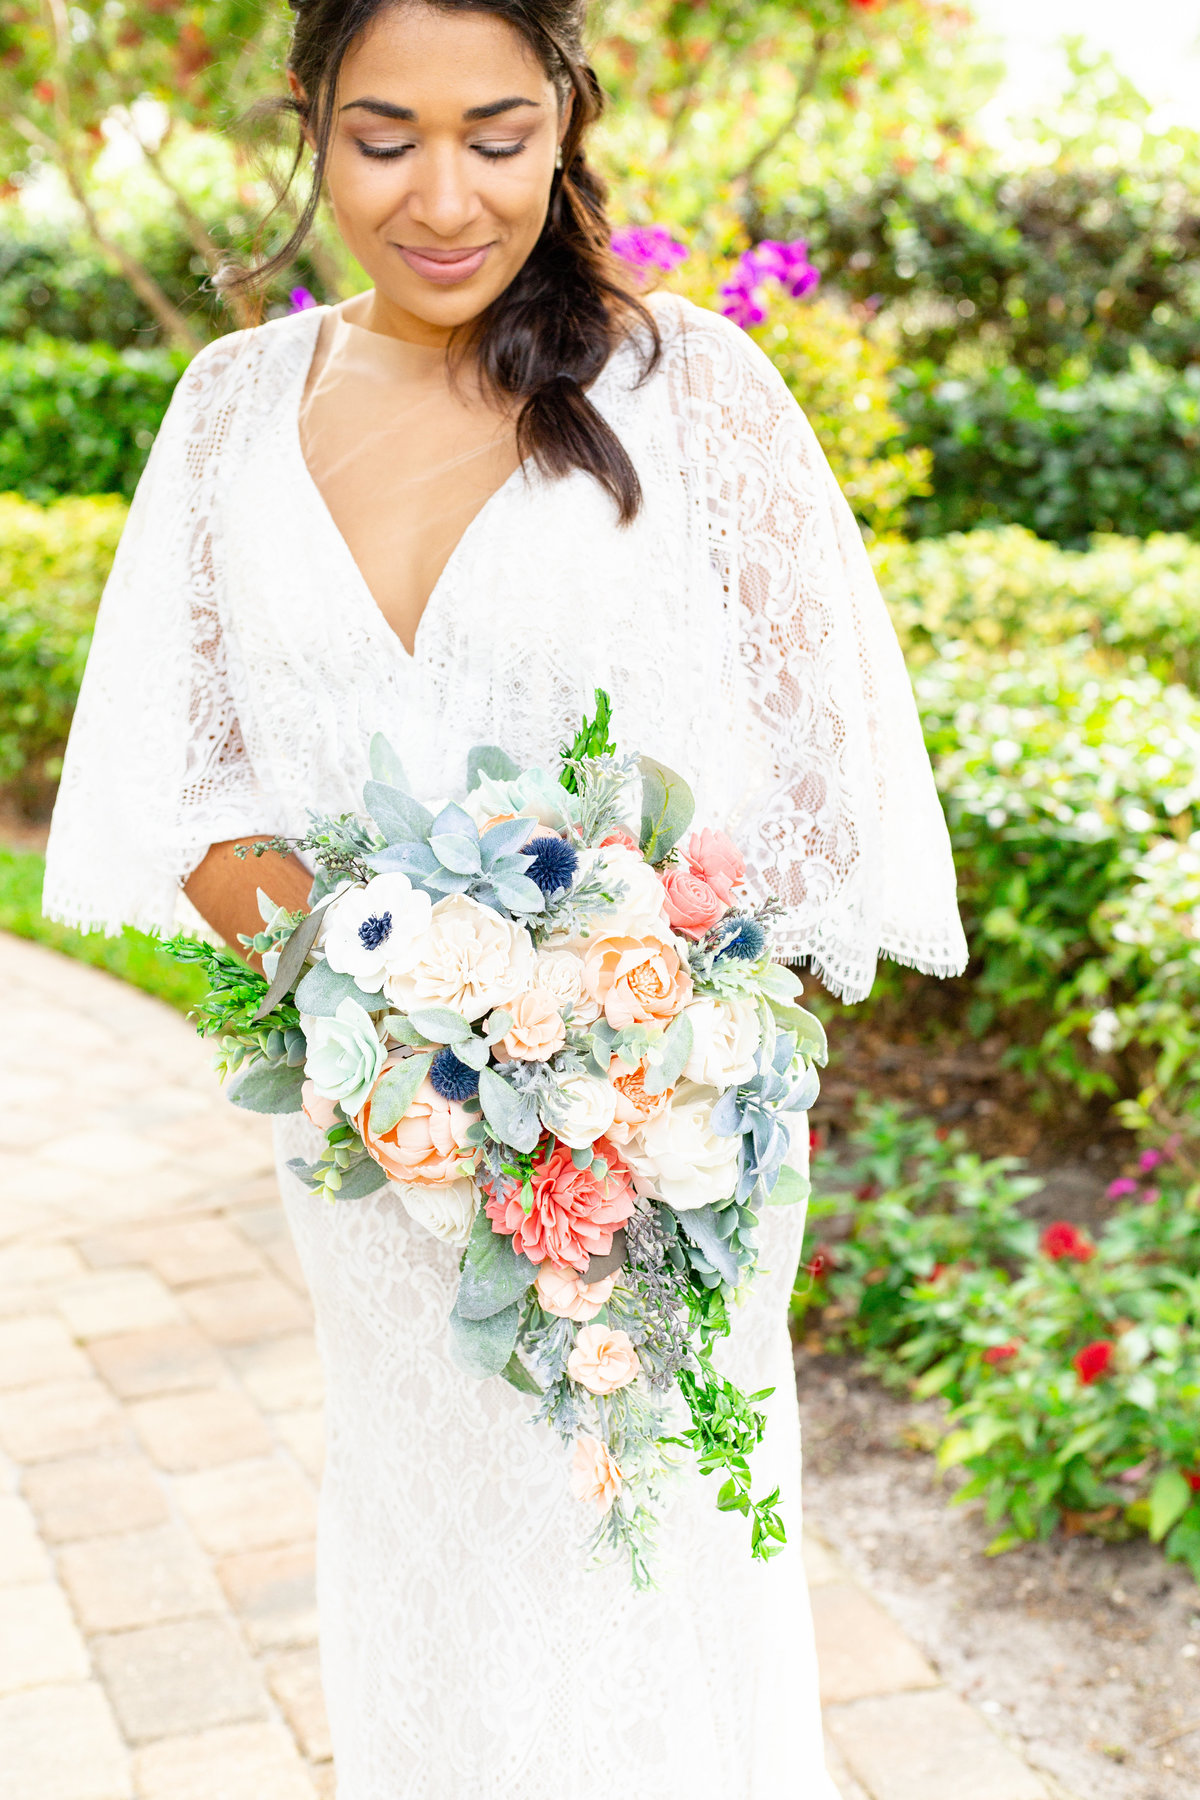 Bride in white wedding gown and chic braid holds light and airy wedding bouquet